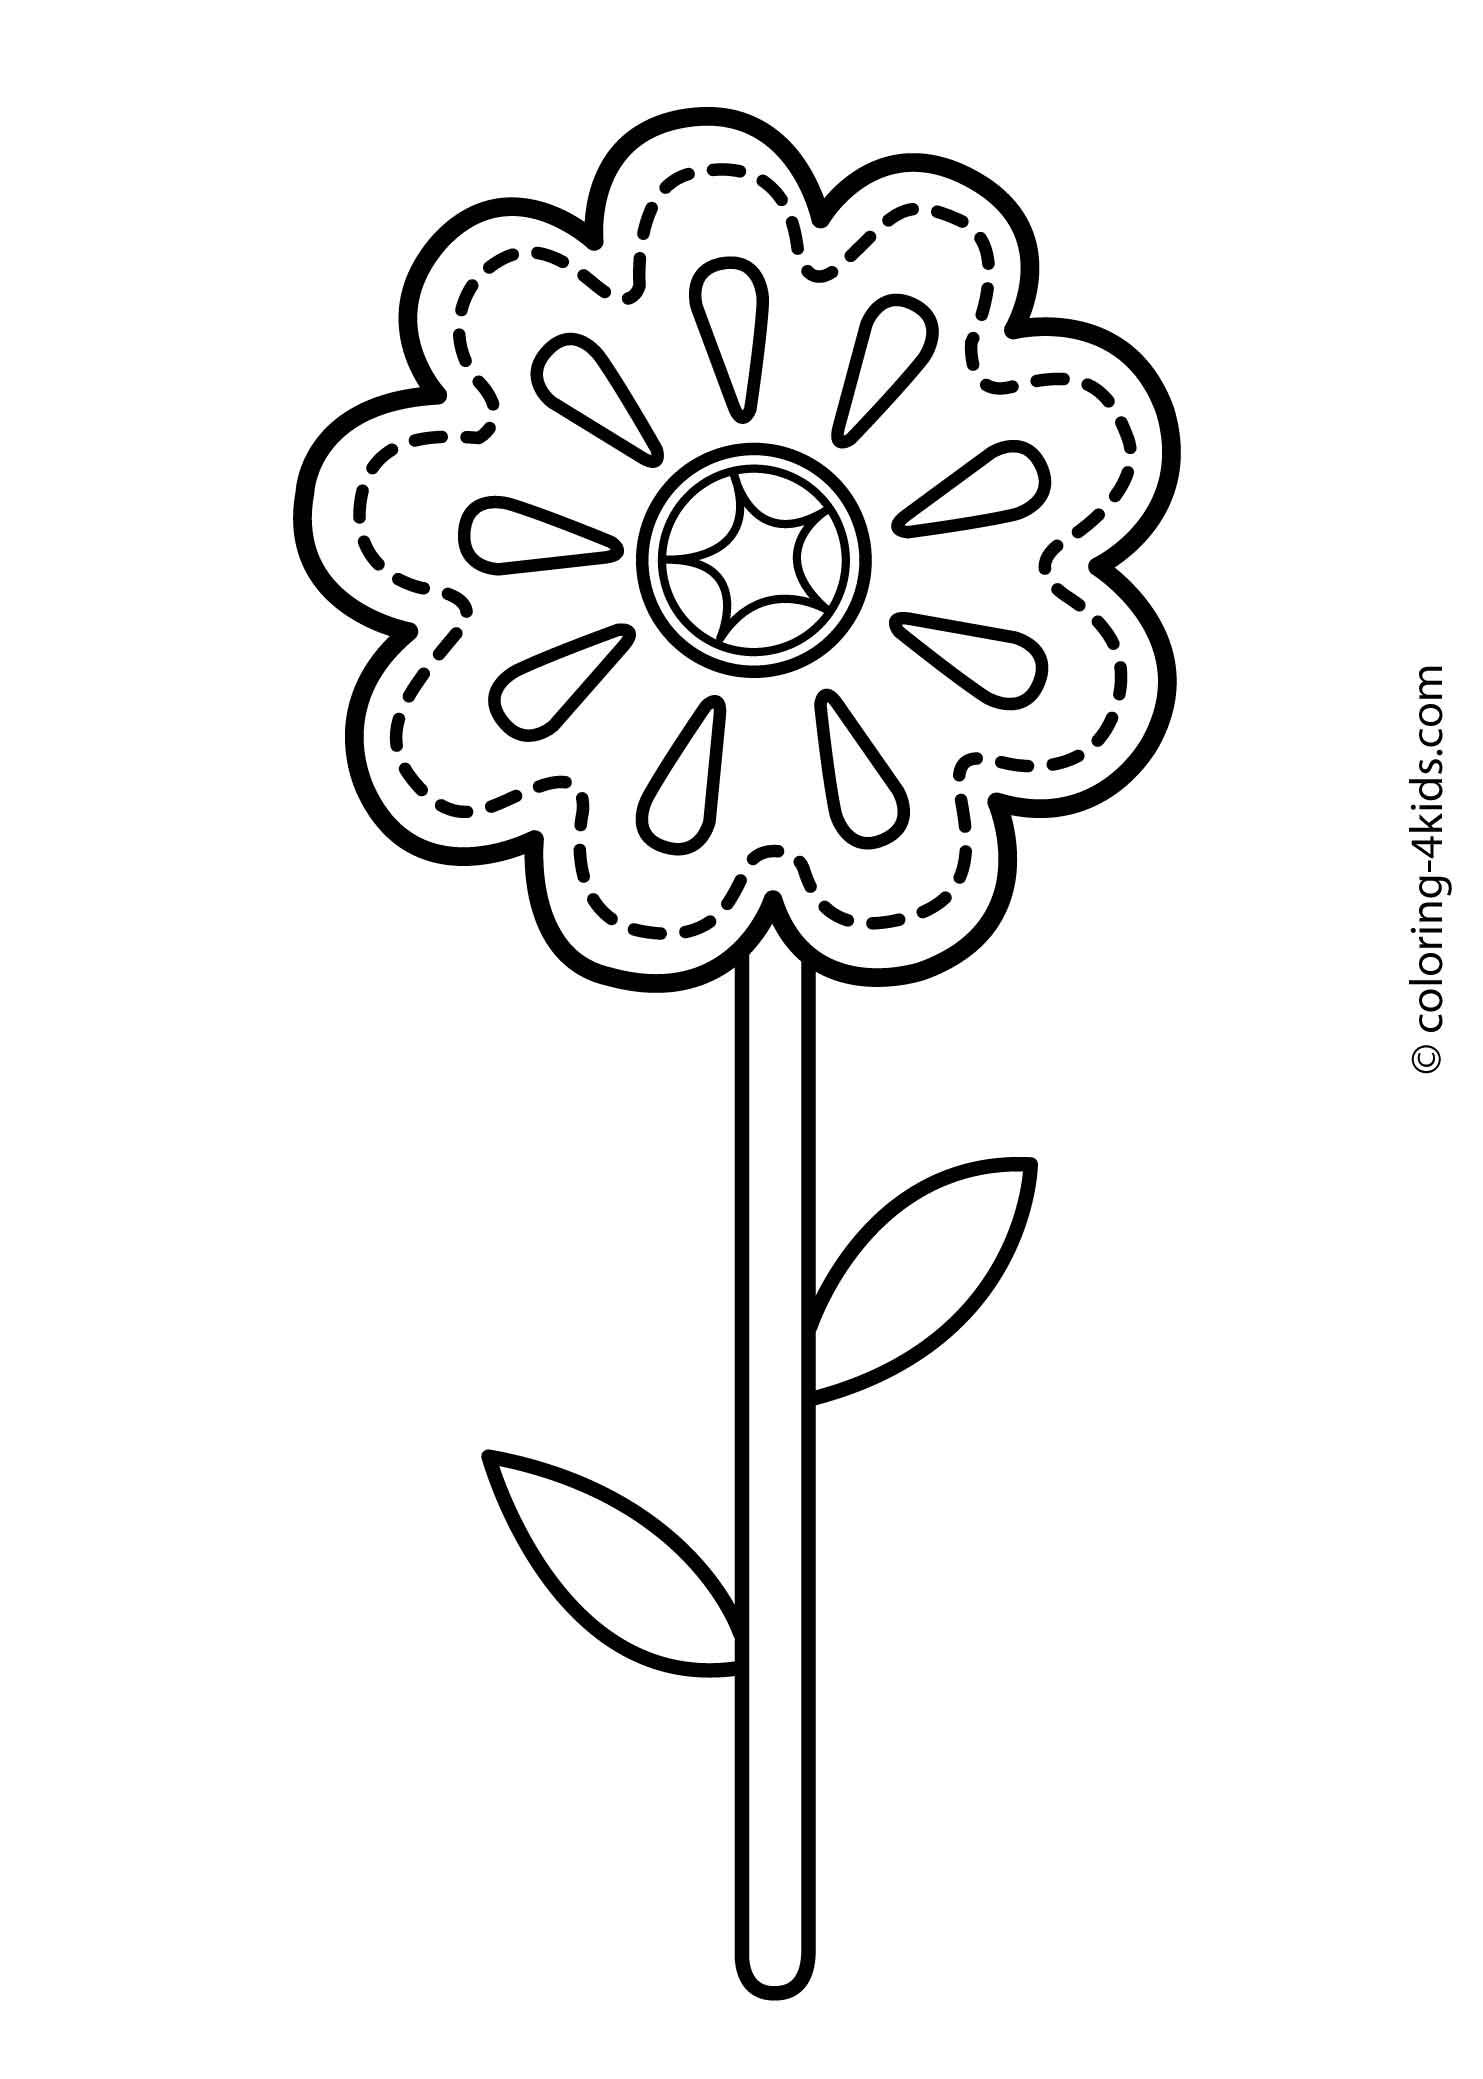 Flower Coloring Pages For Kids Printable 8 Flower Coloring Pages Coloring Pages Avengers Coloring Pages